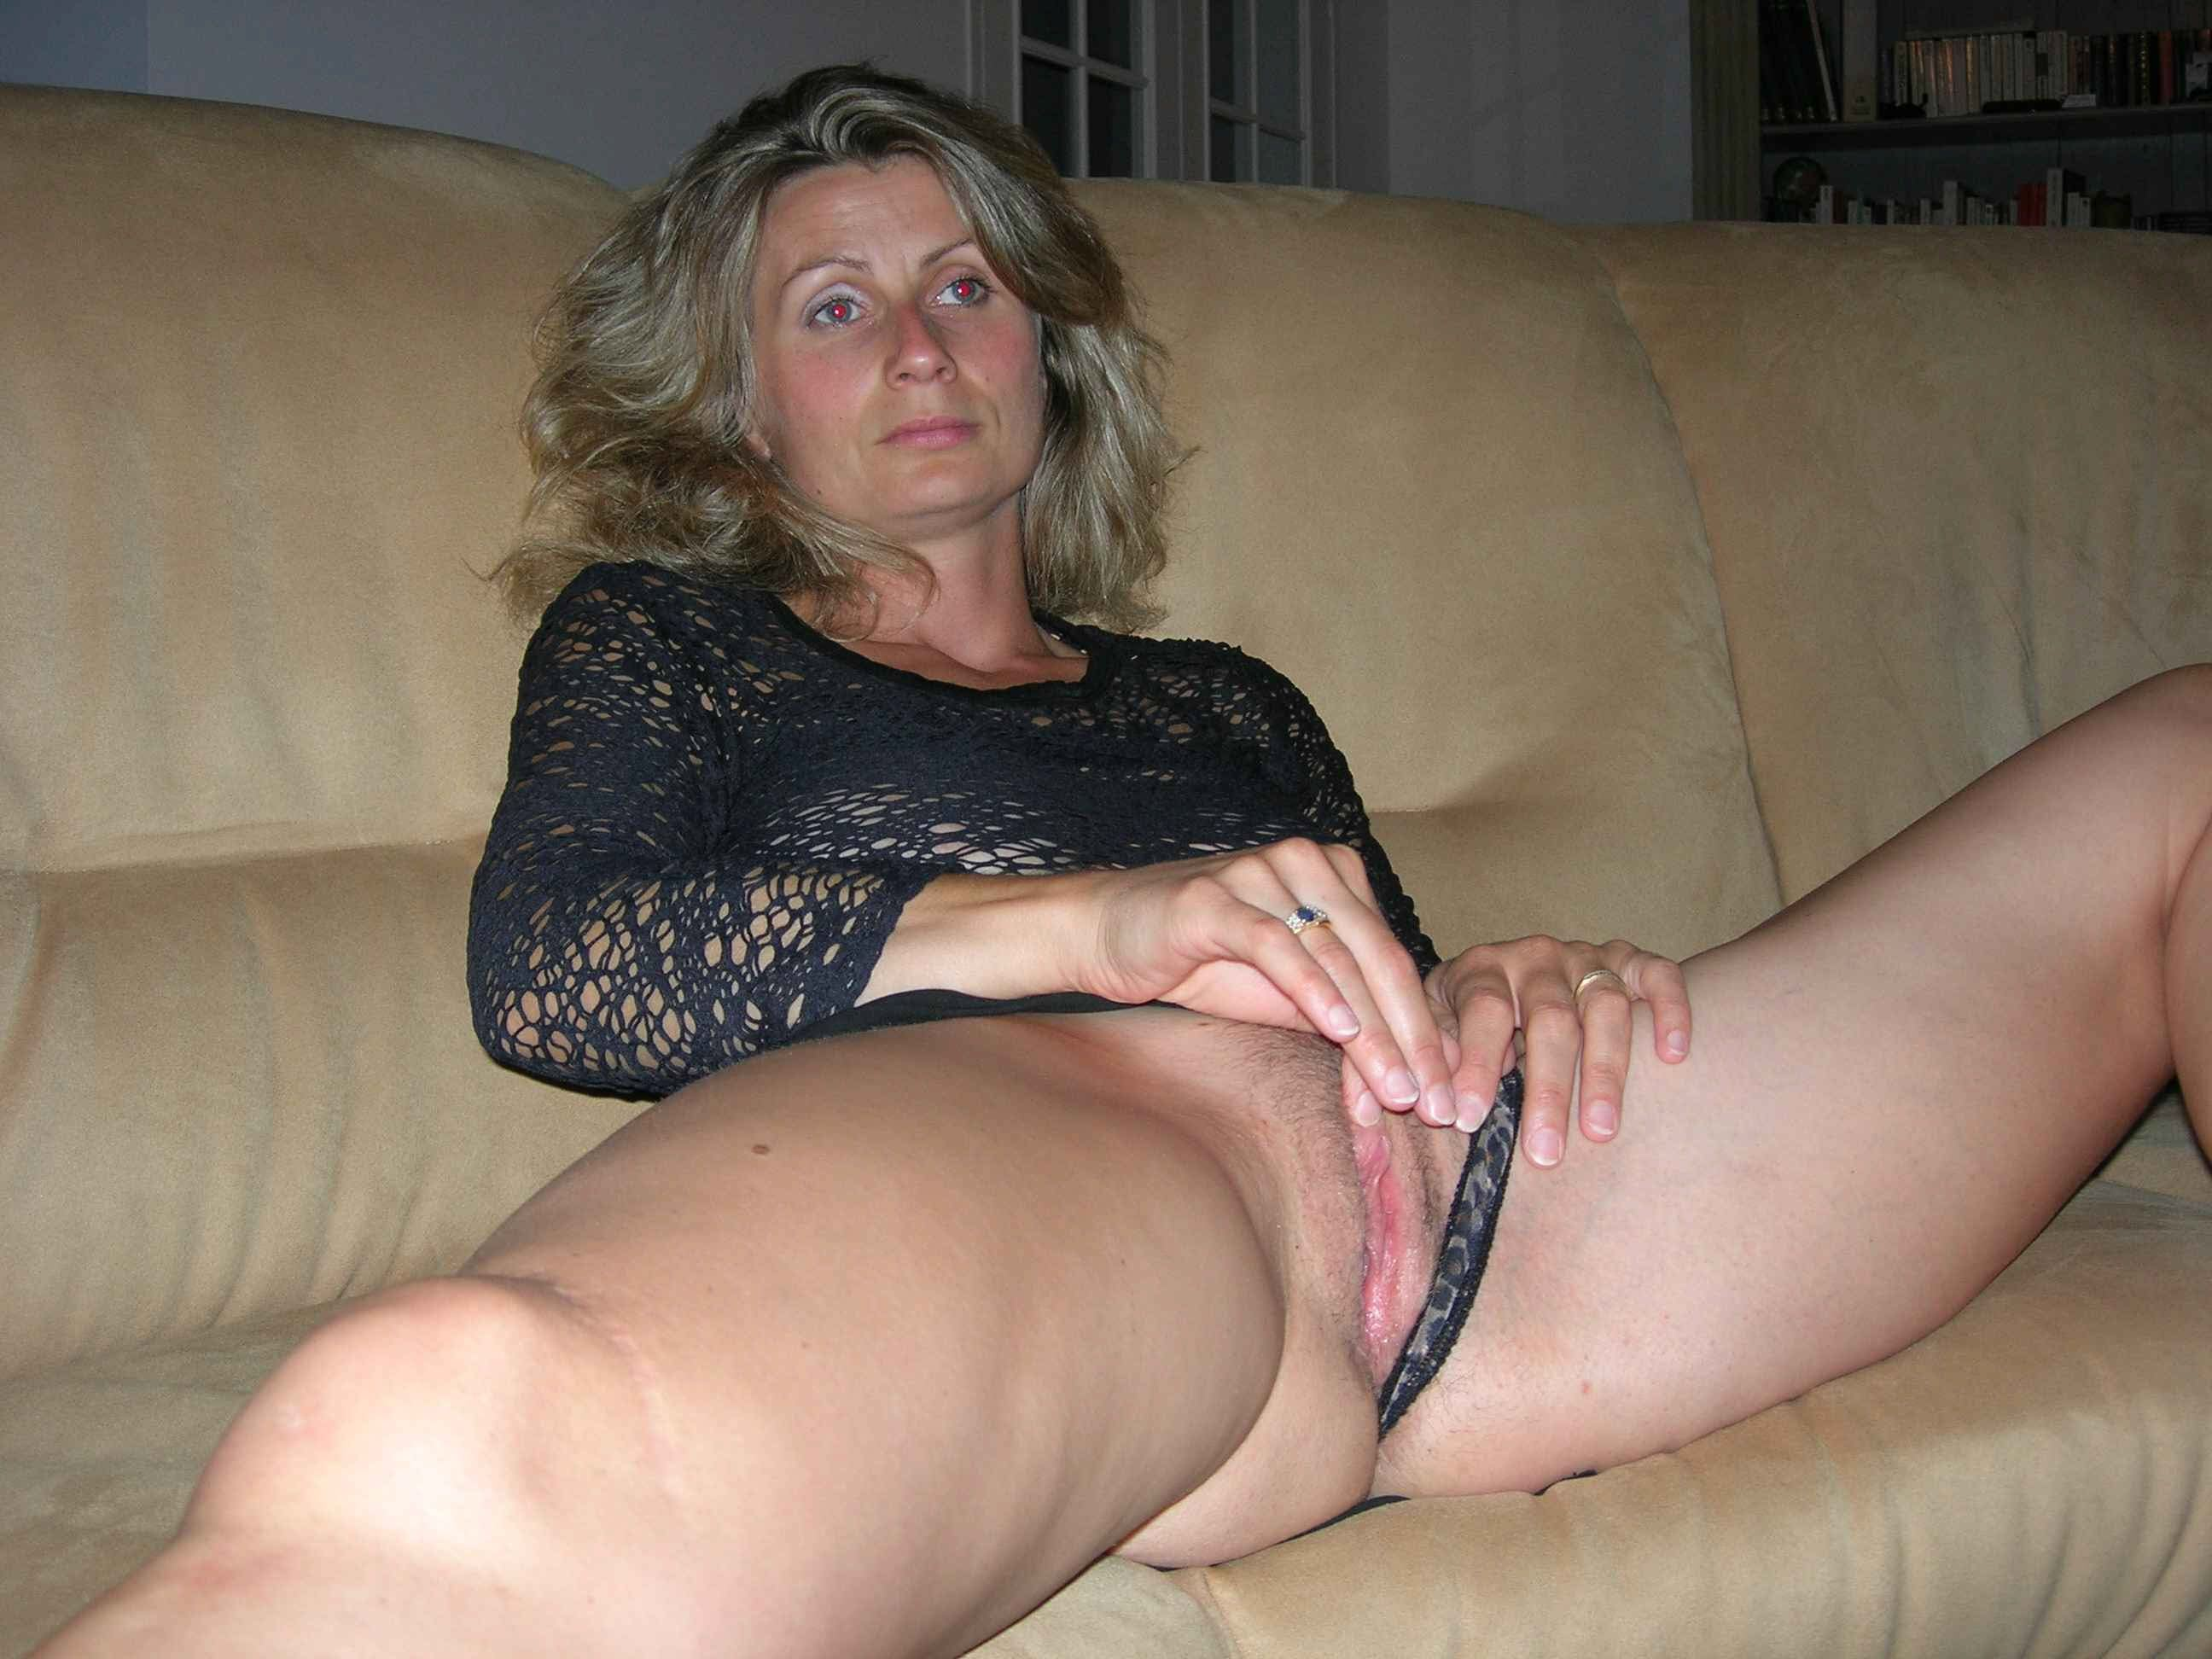 Free Nude Germany Hd Porn Photos Xxx Photo Comments